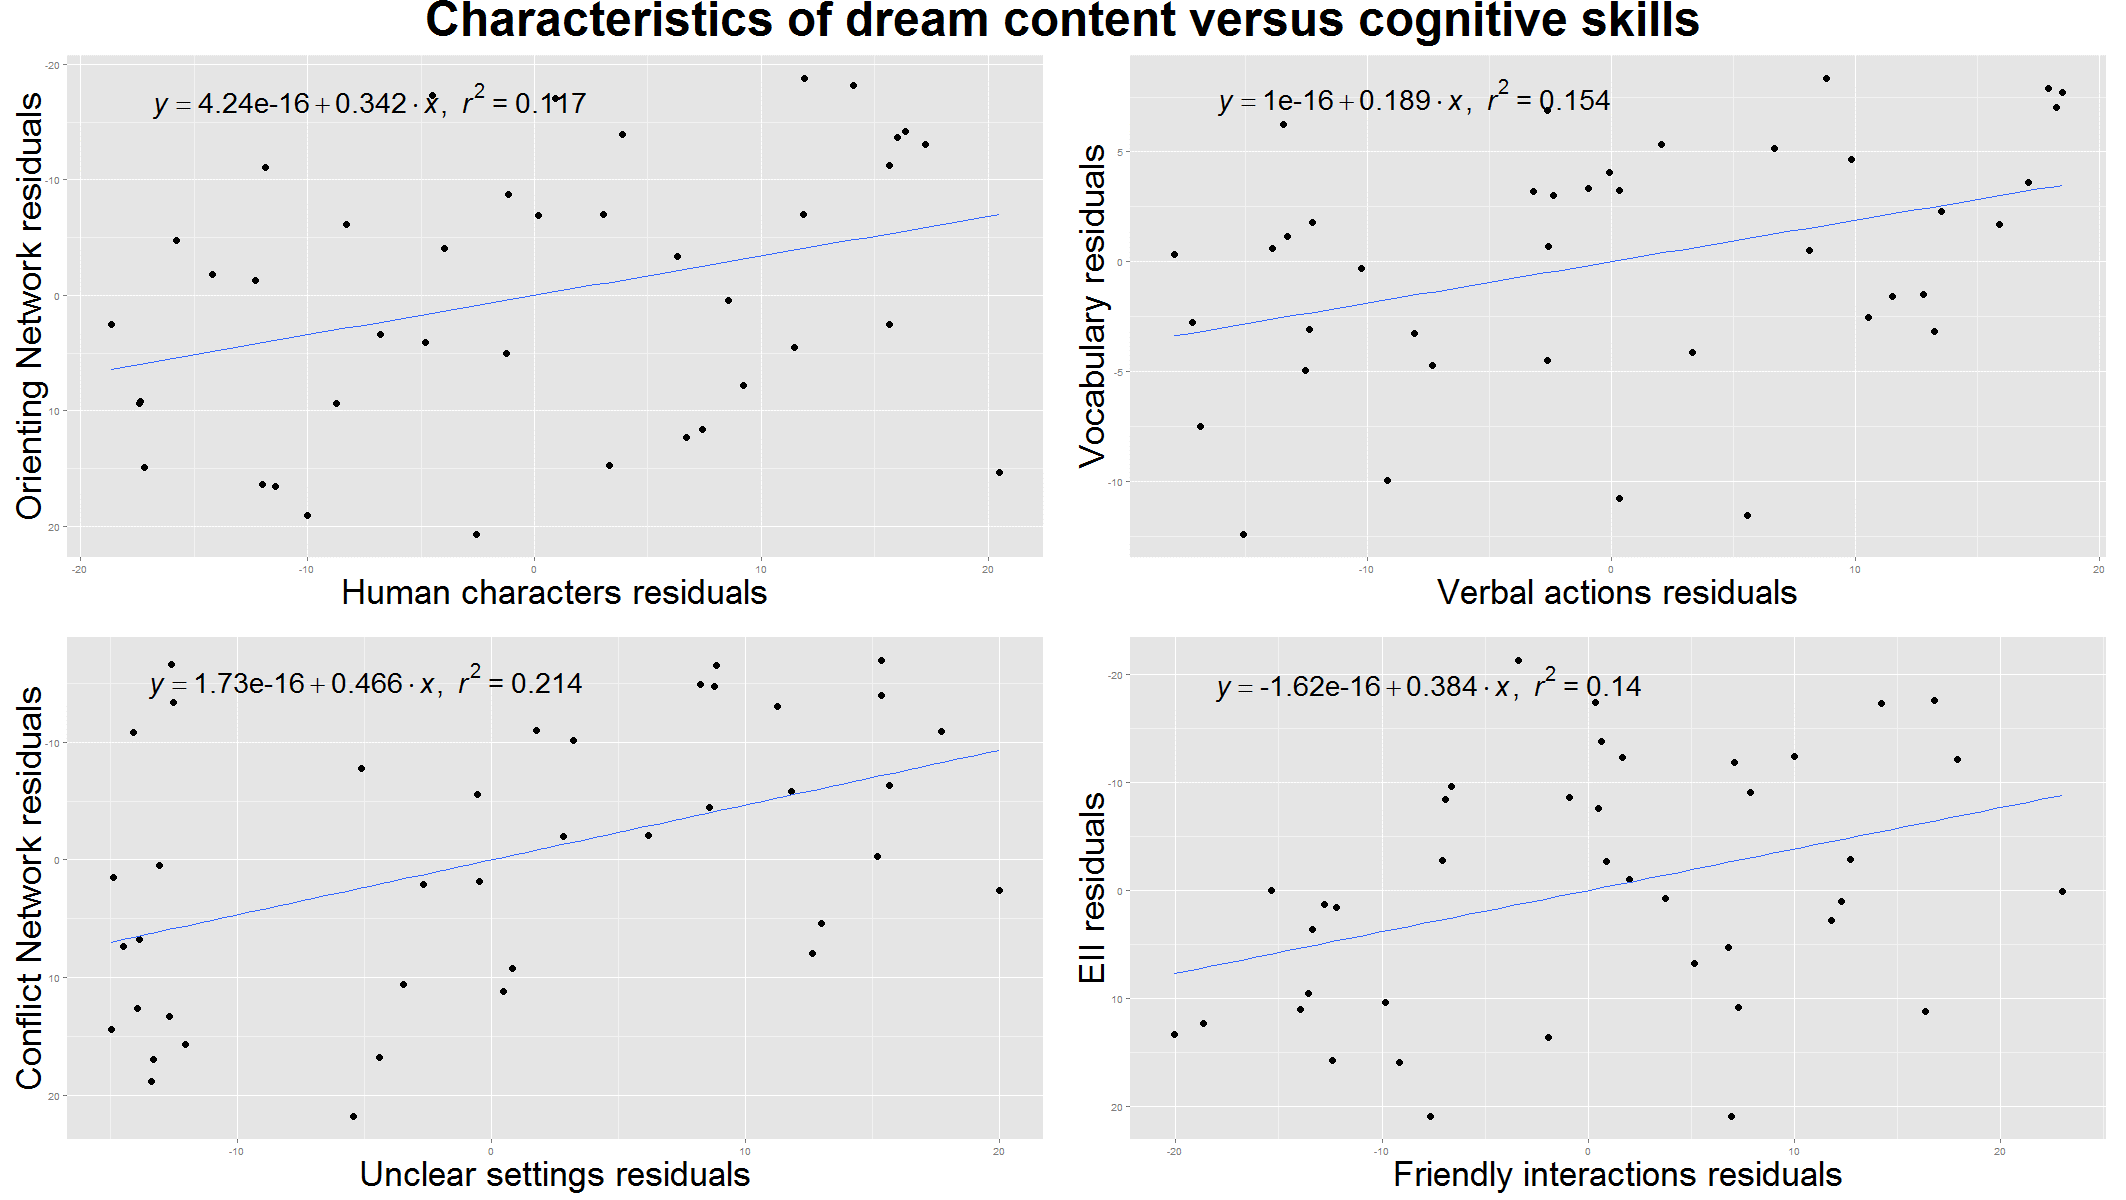 how dreams and dreamings affect individual Vocabulary study list for mark twain's the prince and the pauper (chapters 1-17  and resume his empty grandeurs in his dreams  his dreamings and readings.